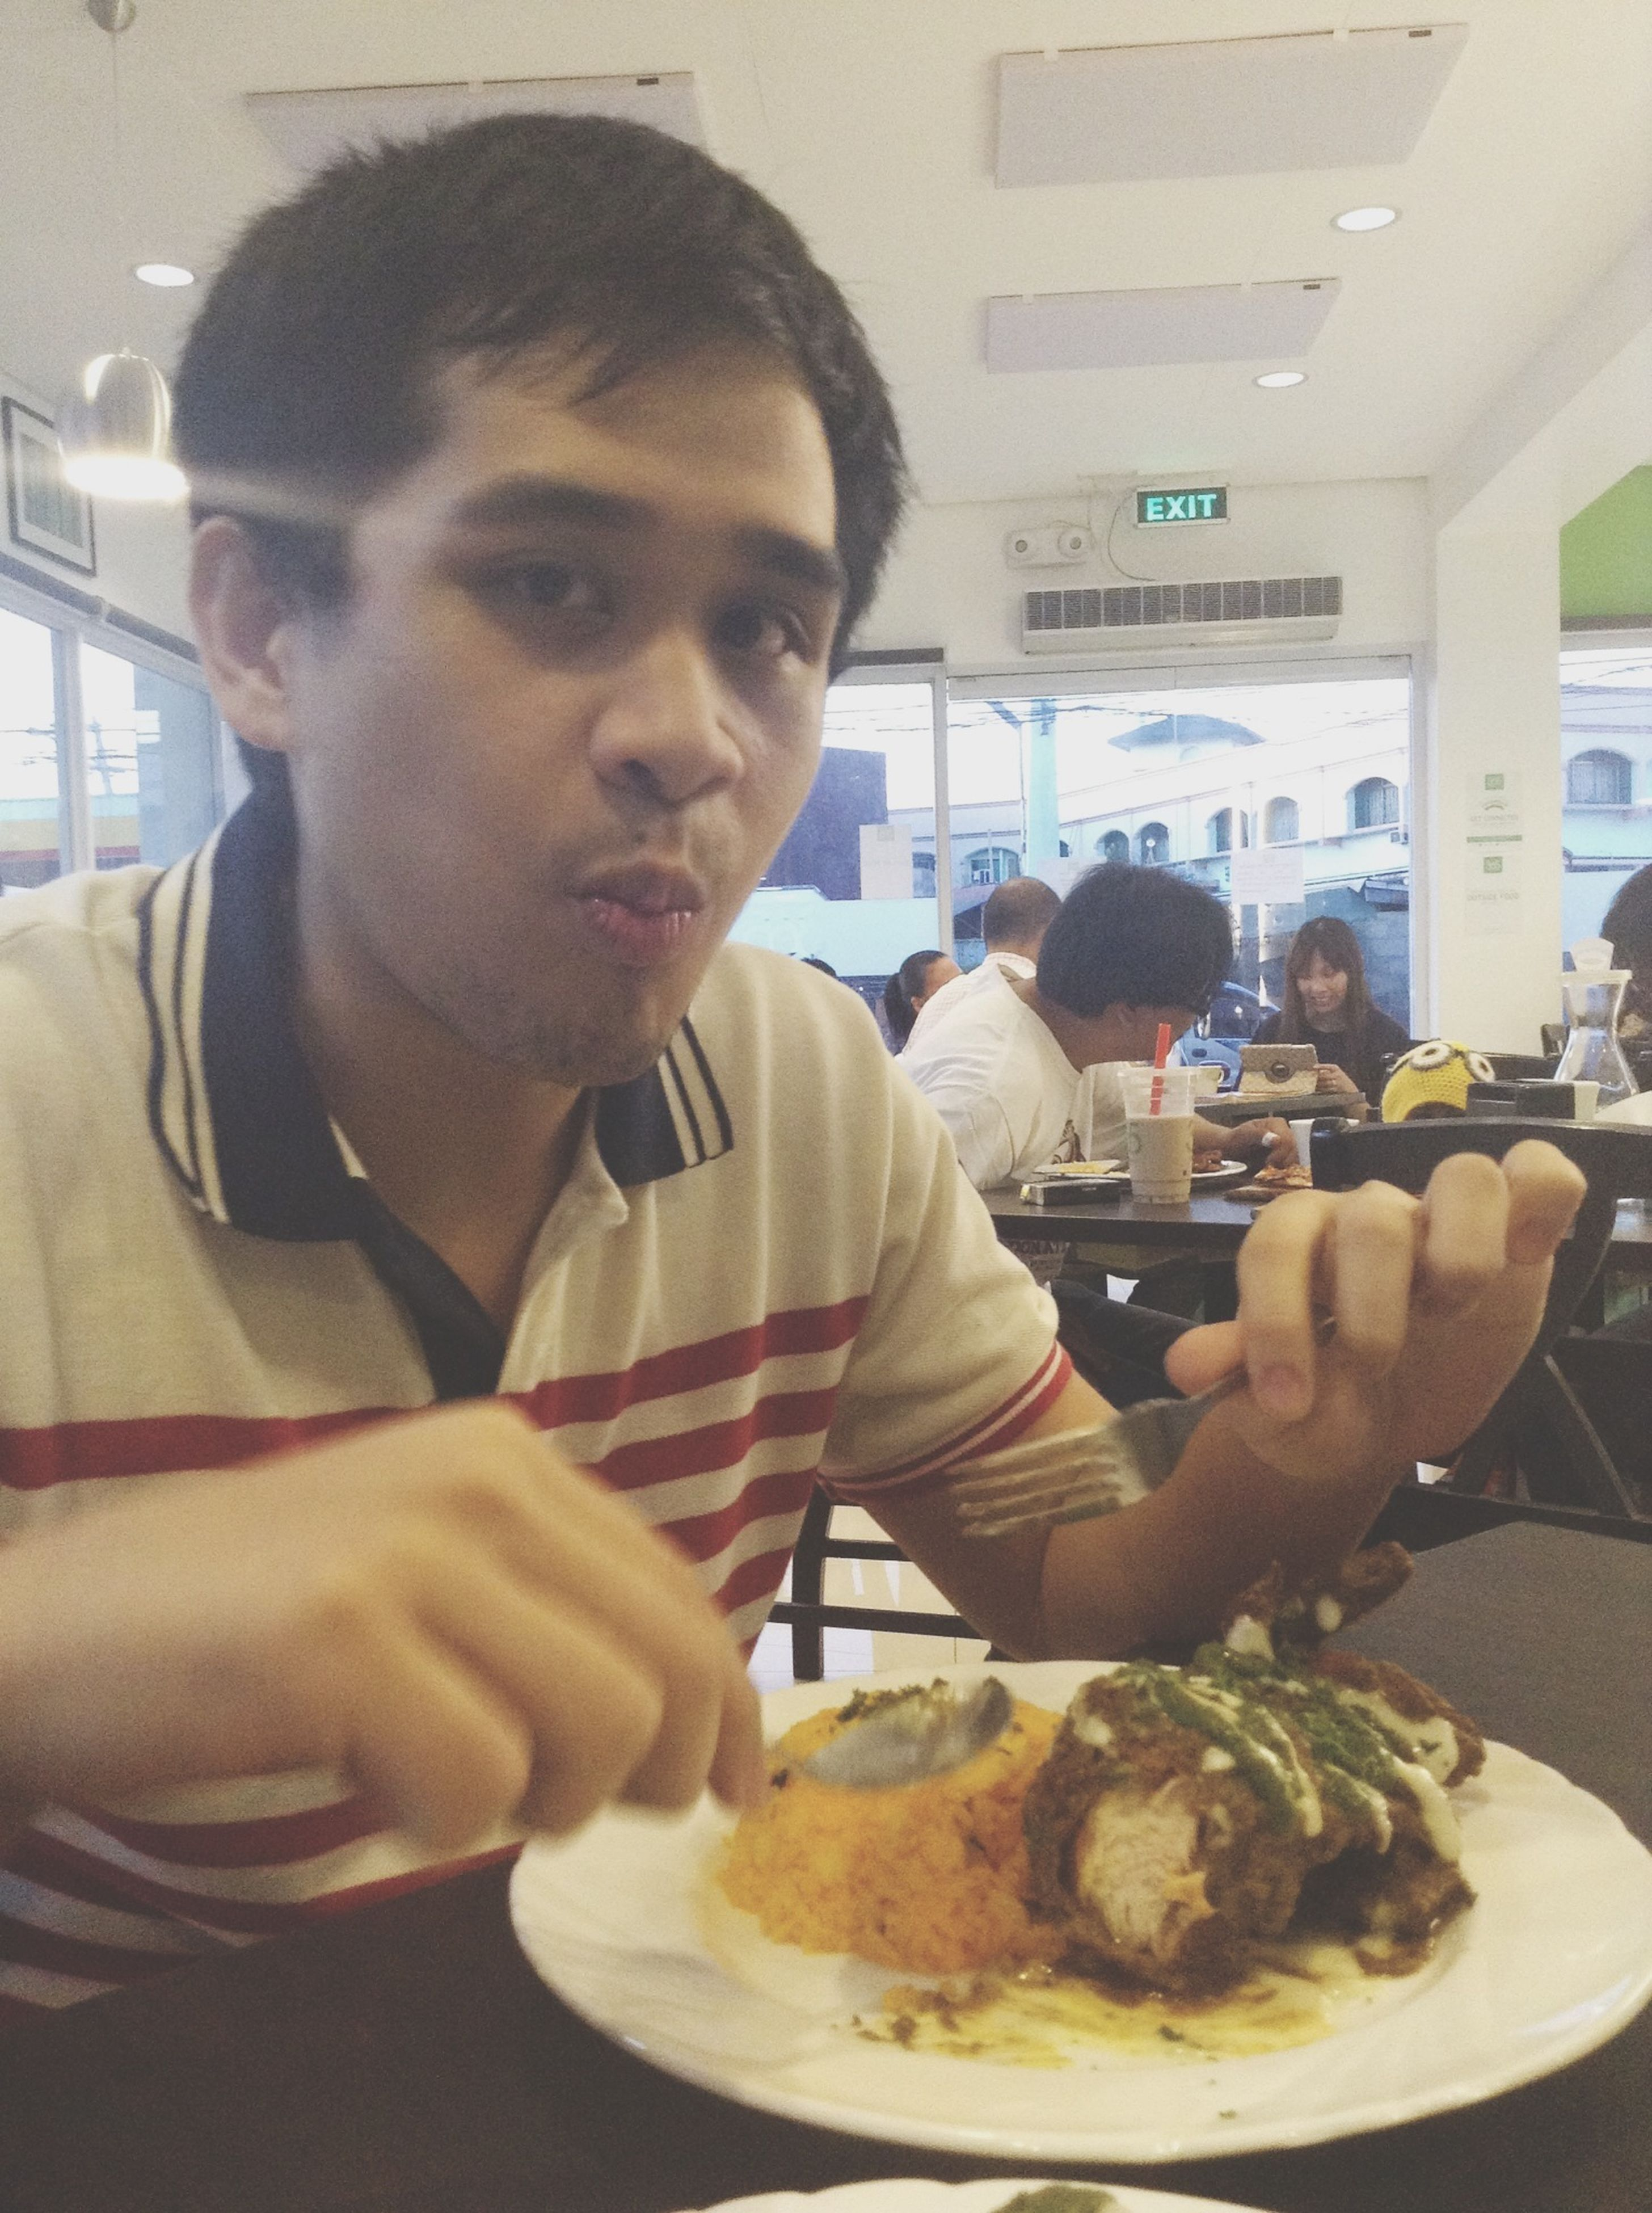 indoors, young men, lifestyles, person, leisure activity, food and drink, young adult, casual clothing, holding, communication, sitting, restaurant, mid adult, looking at camera, front view, mid adult men, portrait